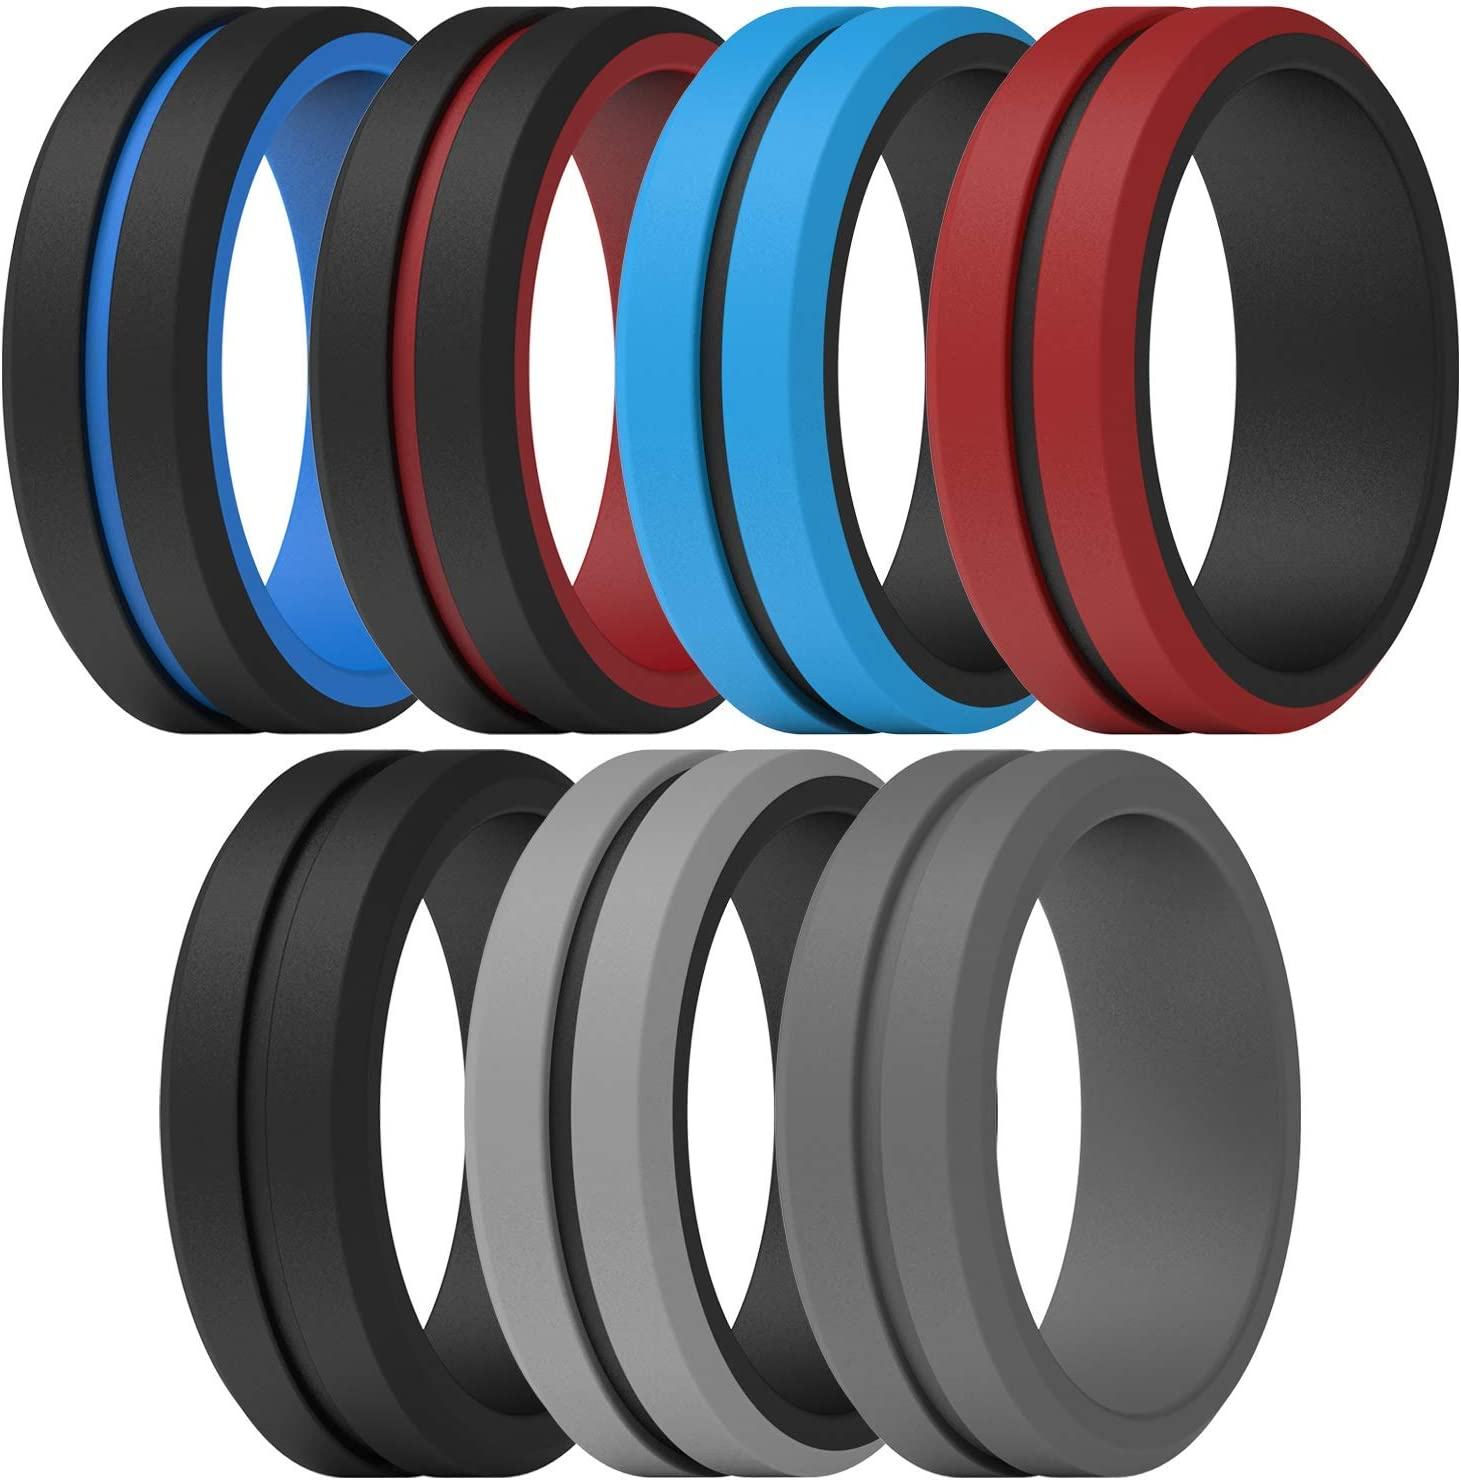 ThunderFit Silicone Wedding Rings for Men 2 Layers 4 Rings Engraved Middle Line Beveled Edge Rubber Engagement Bands 1 Ring 7 Rings